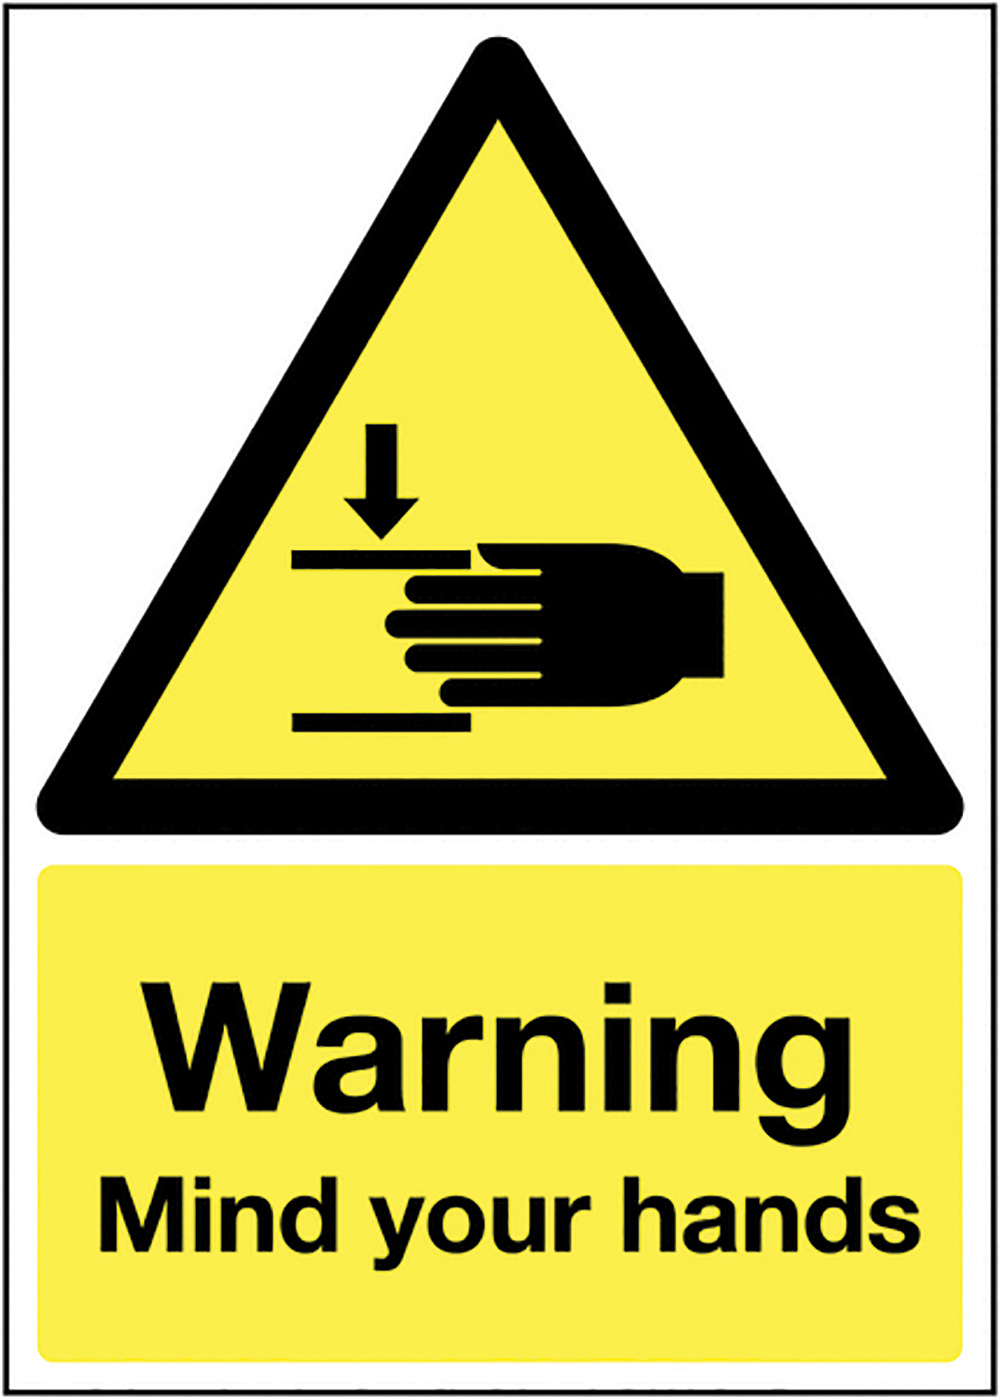 Warning Mind Your Hands 210x148mm 1.2mm Rigid Plastic Safety Sign